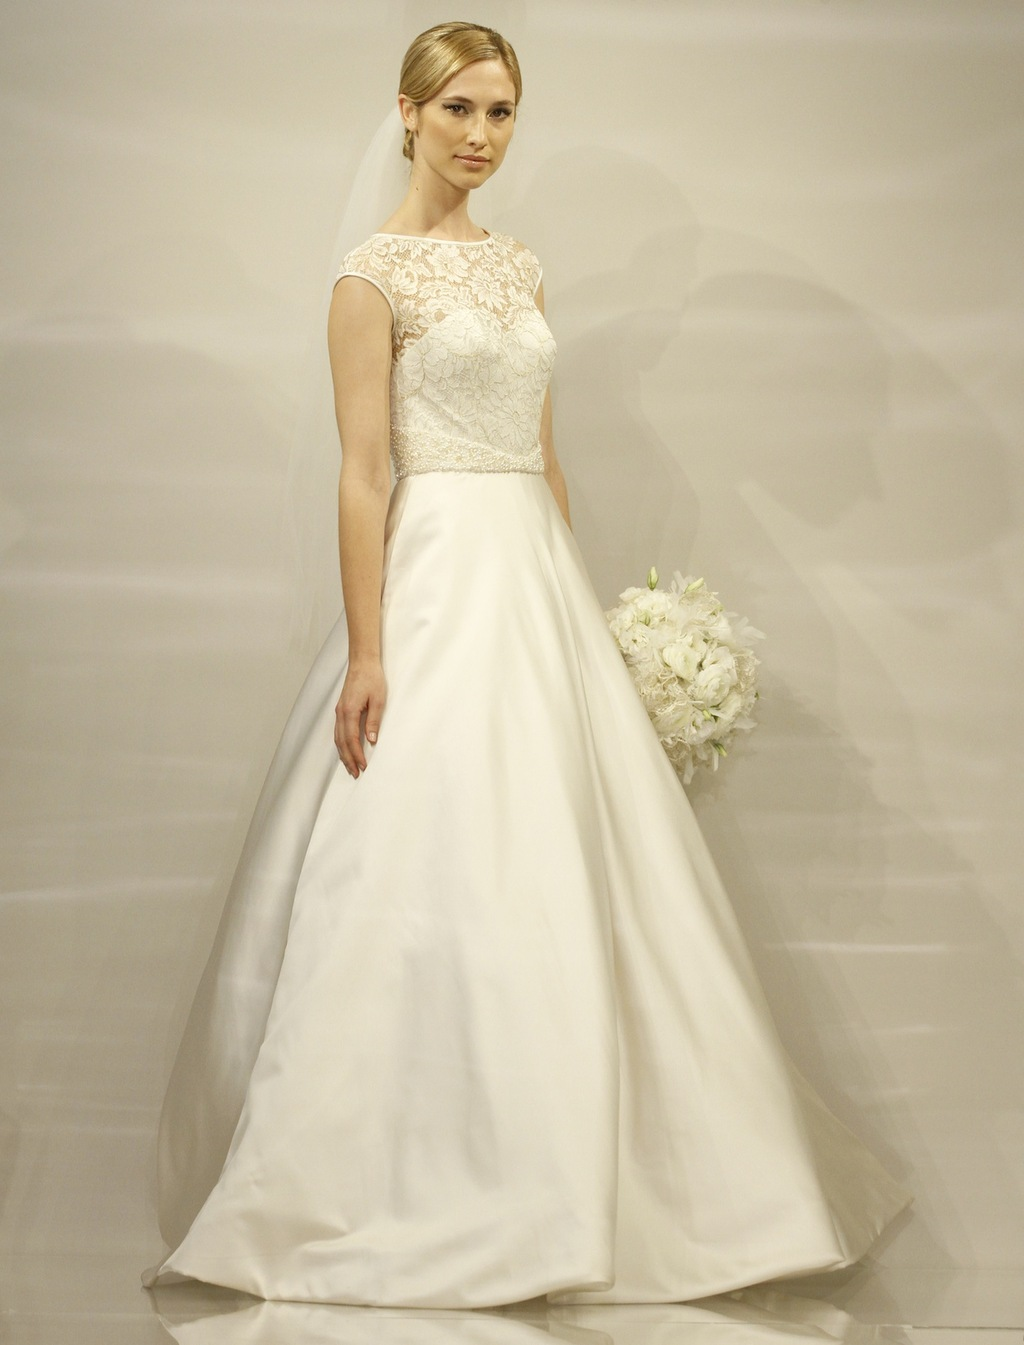 Celeste-wedding-dress-by-theia-fall-2014-bridal-collection.full